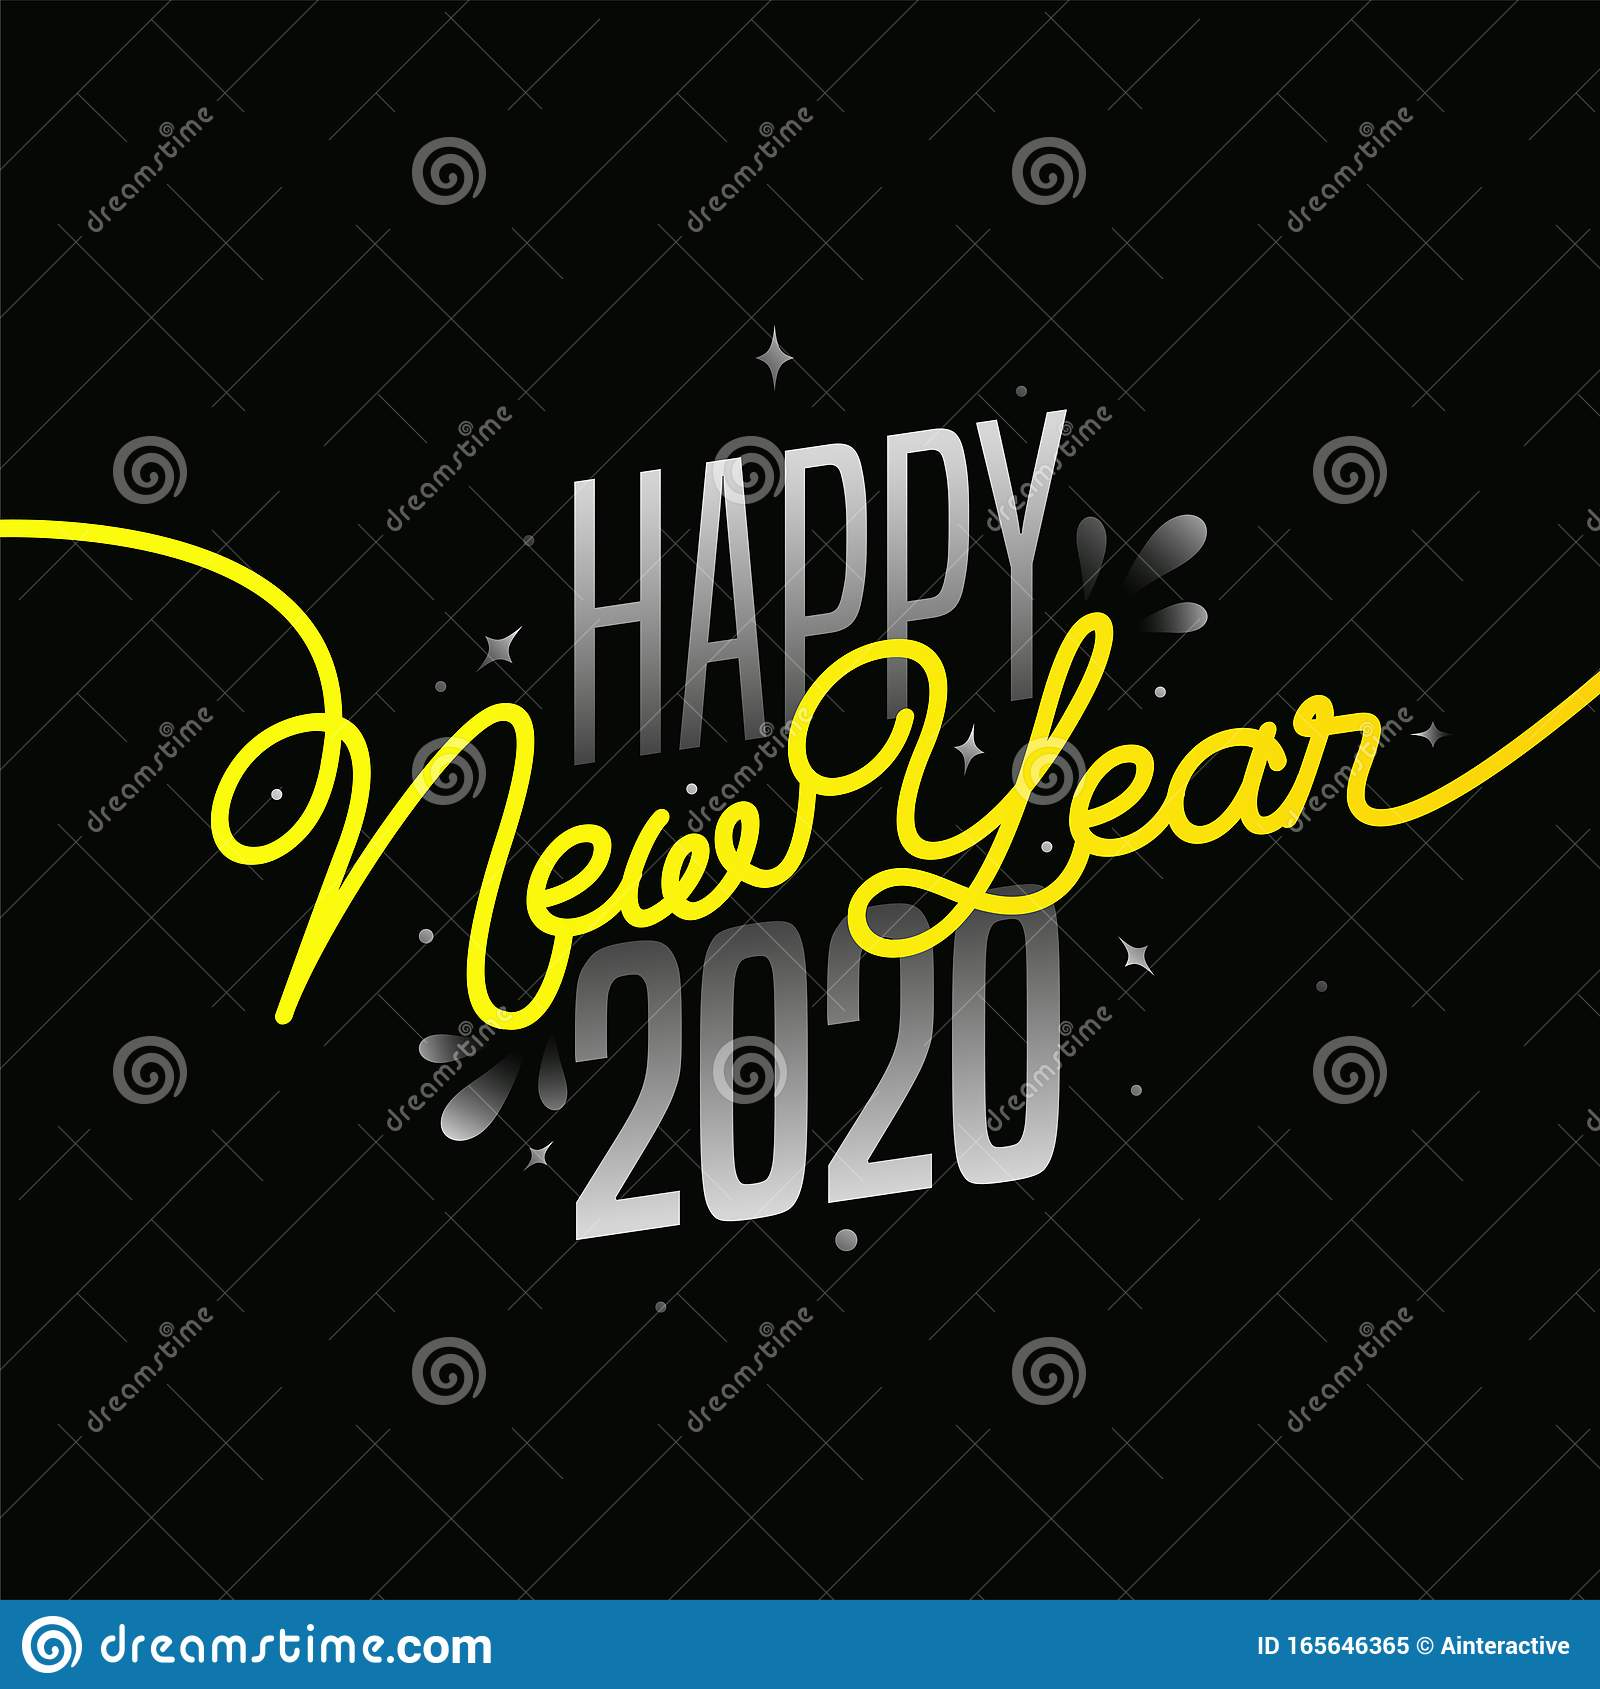 Grey And Yellow Text Of Happy New Year 2020 Stock Illustration